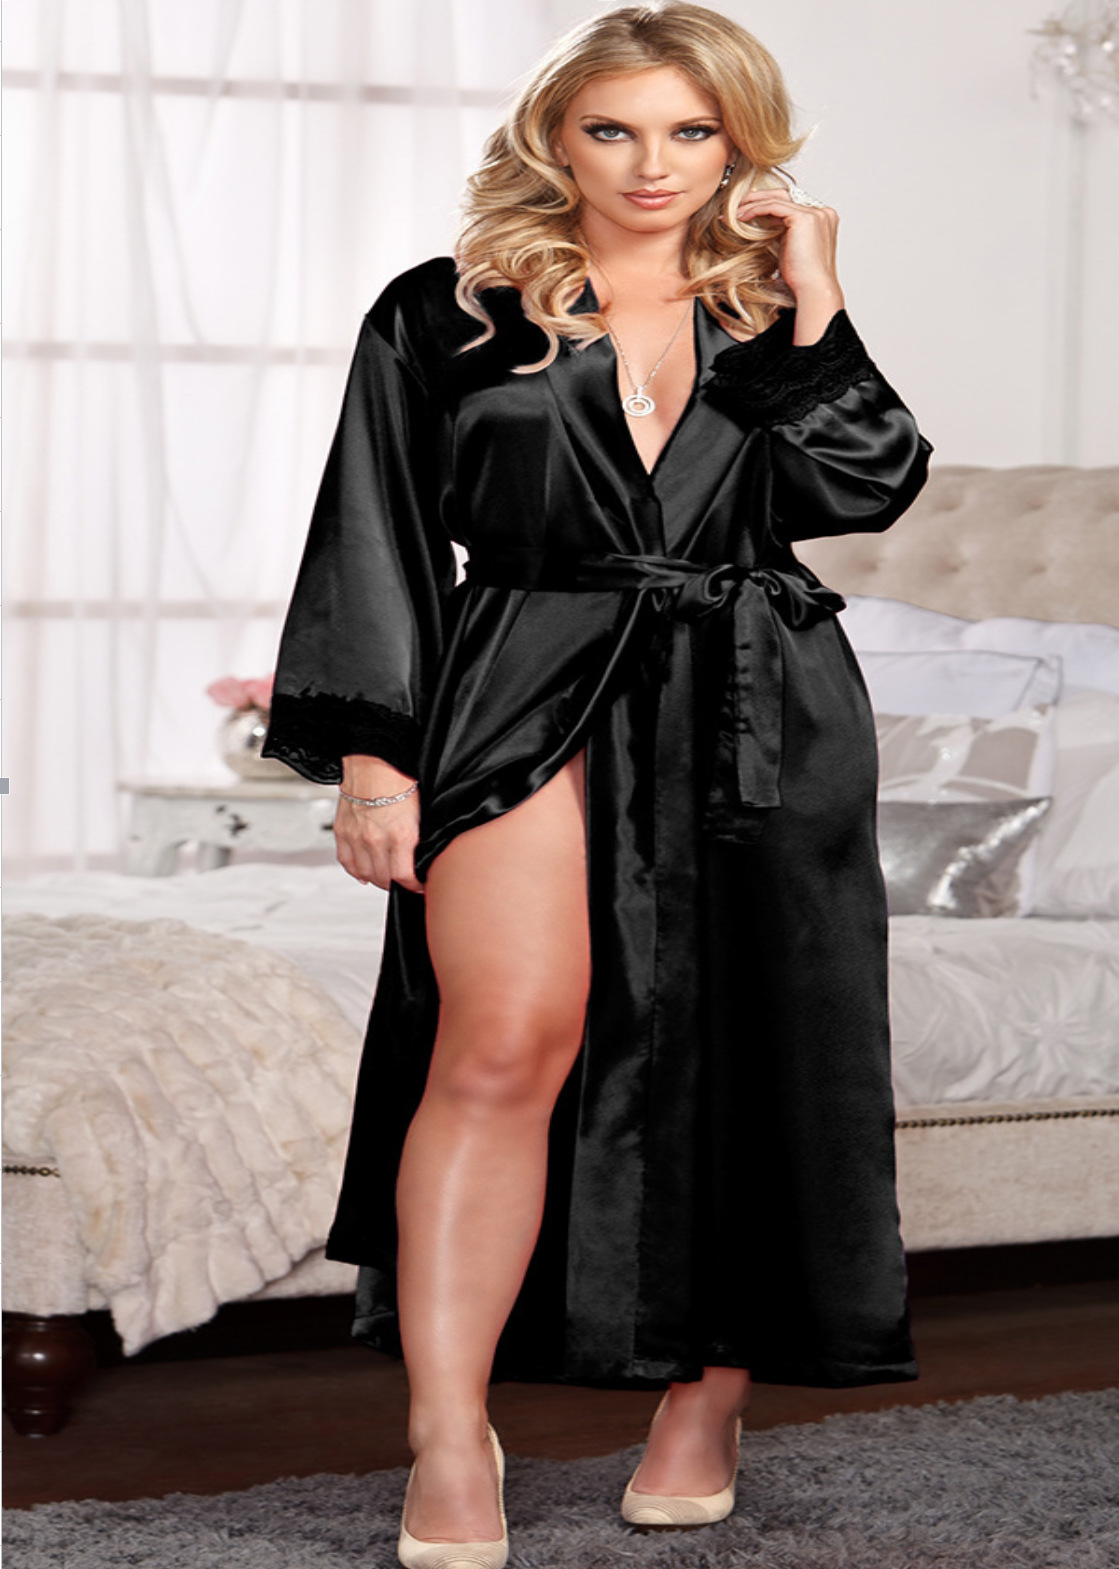 Hot Selling Pajamas Imitated Silk Fabric Robe Bathrobe Large Size Bathrobe Nightgown Supply Of Goods Europe And America 061